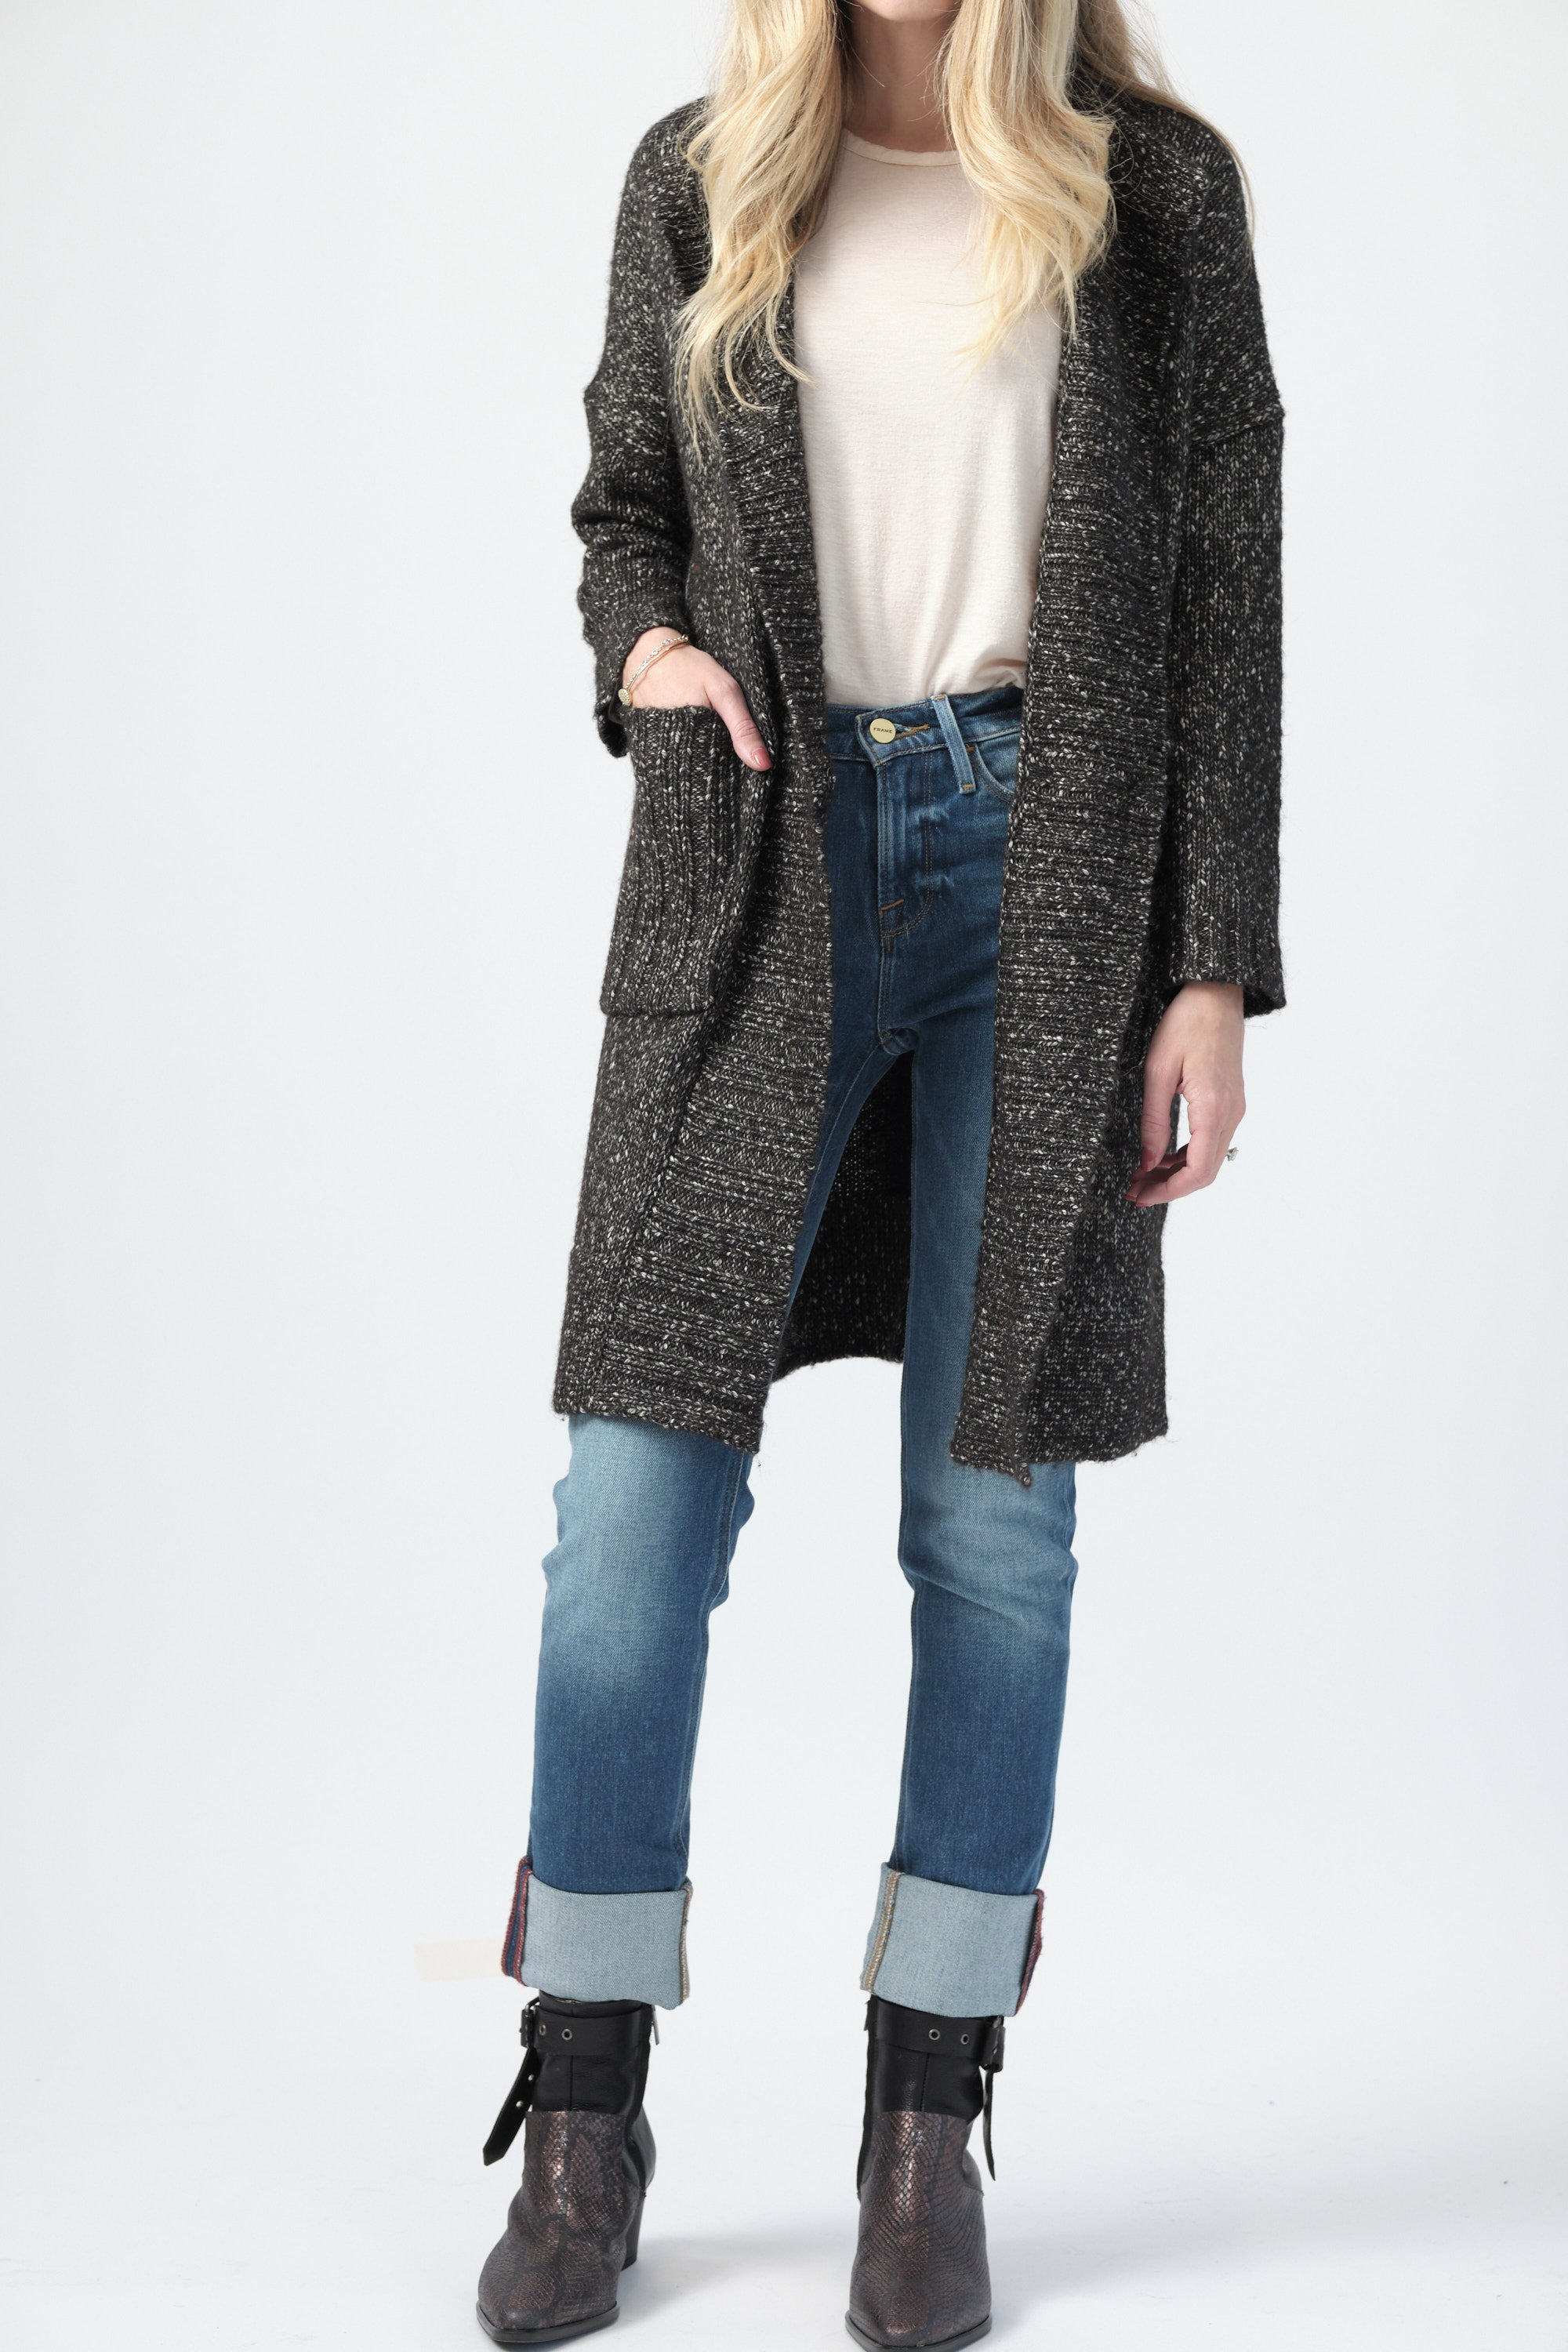 Cotton Duster Cardigan in Black